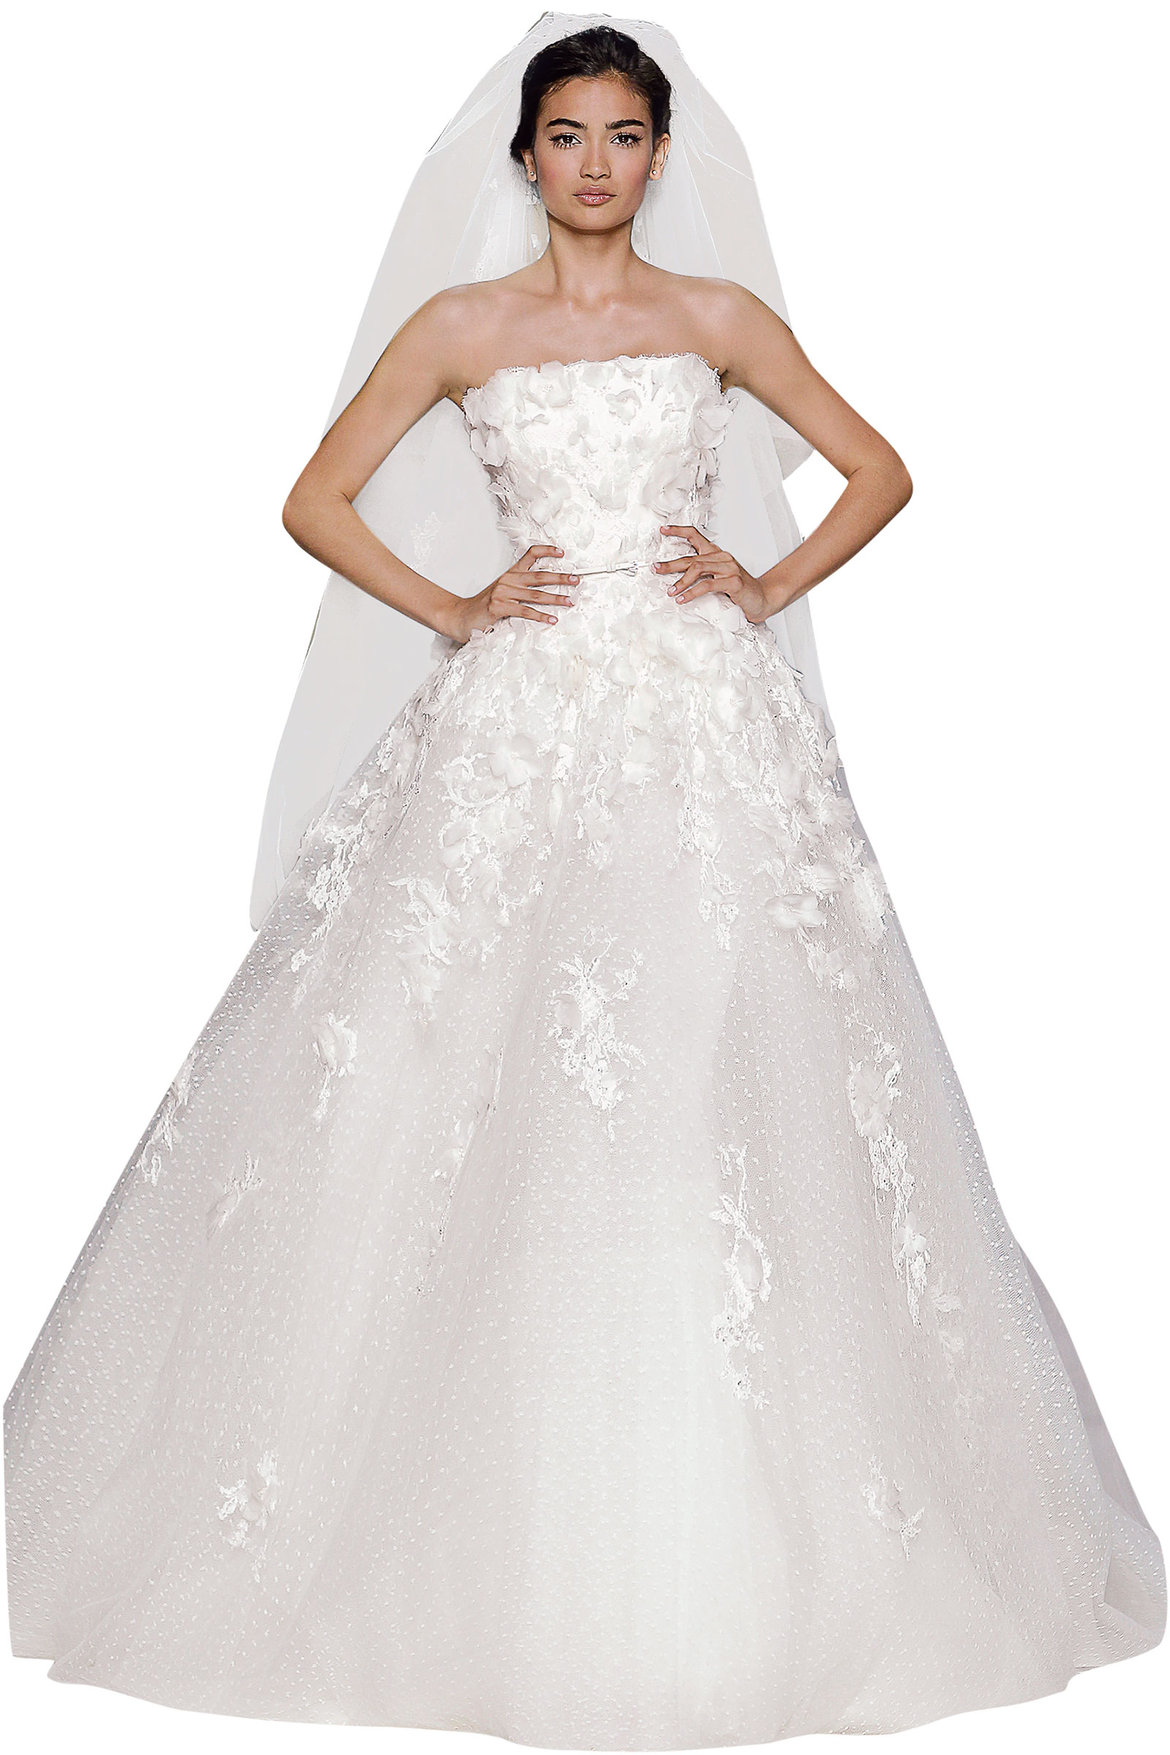 Best Wedding Dress For Your Body Type Page 6